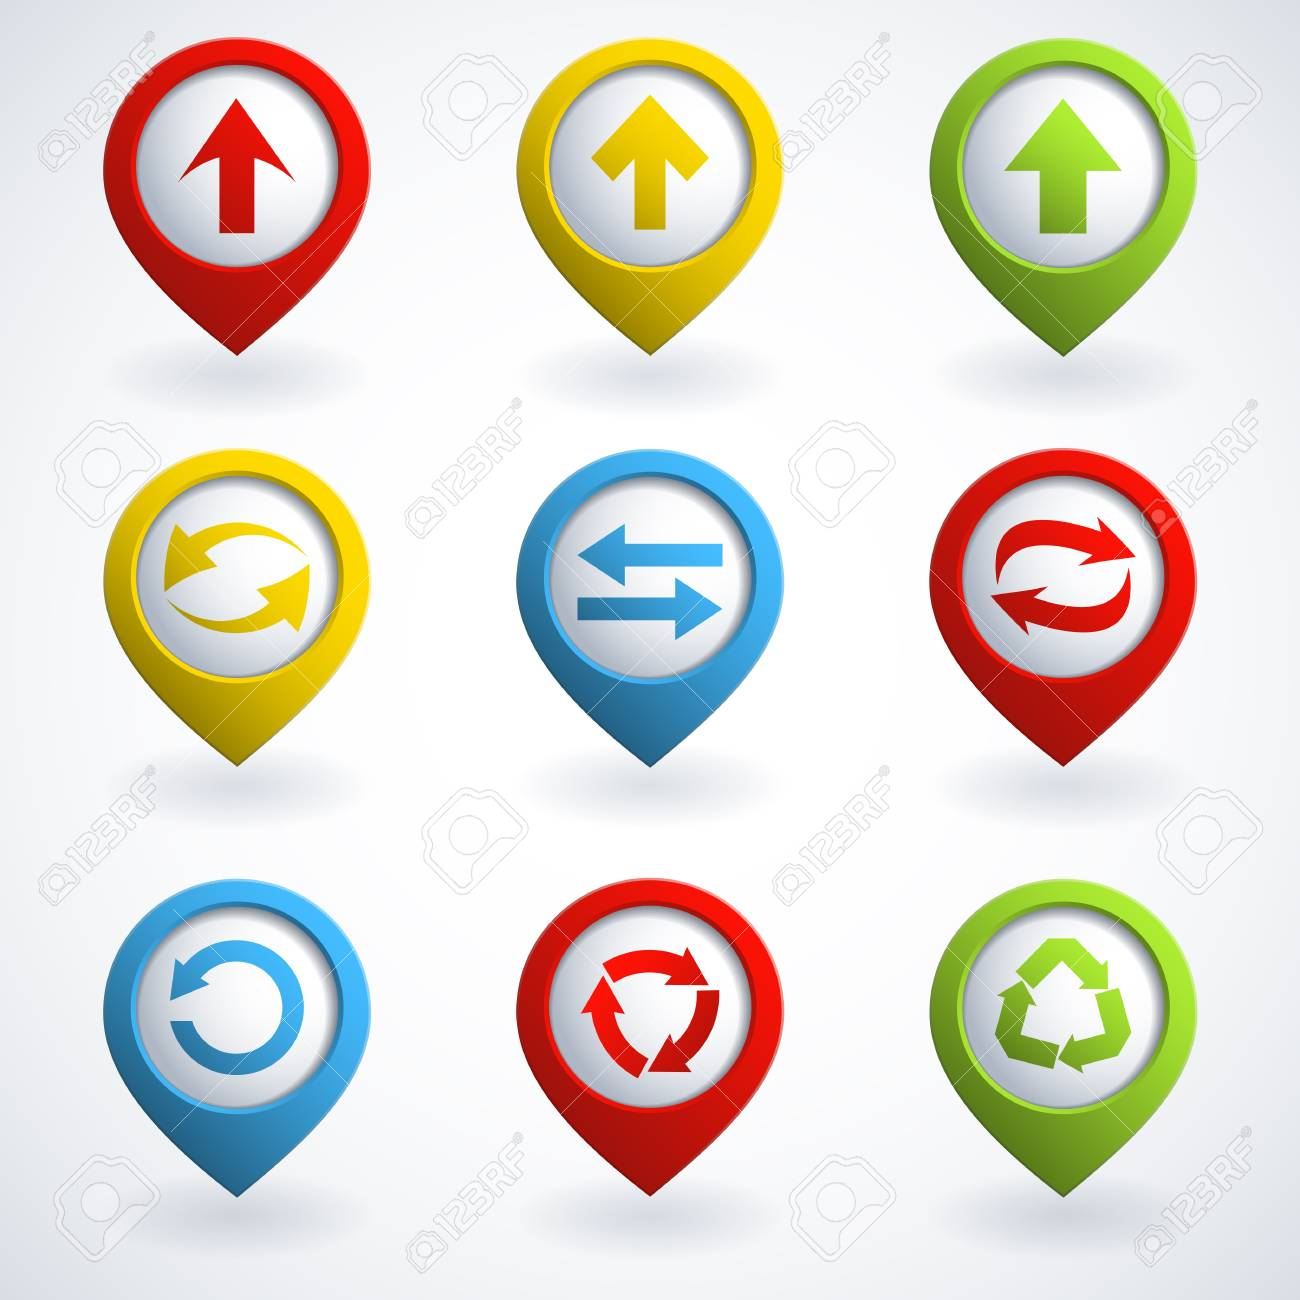 Set of colorful arrow buttons. Stock Vector - 15361391